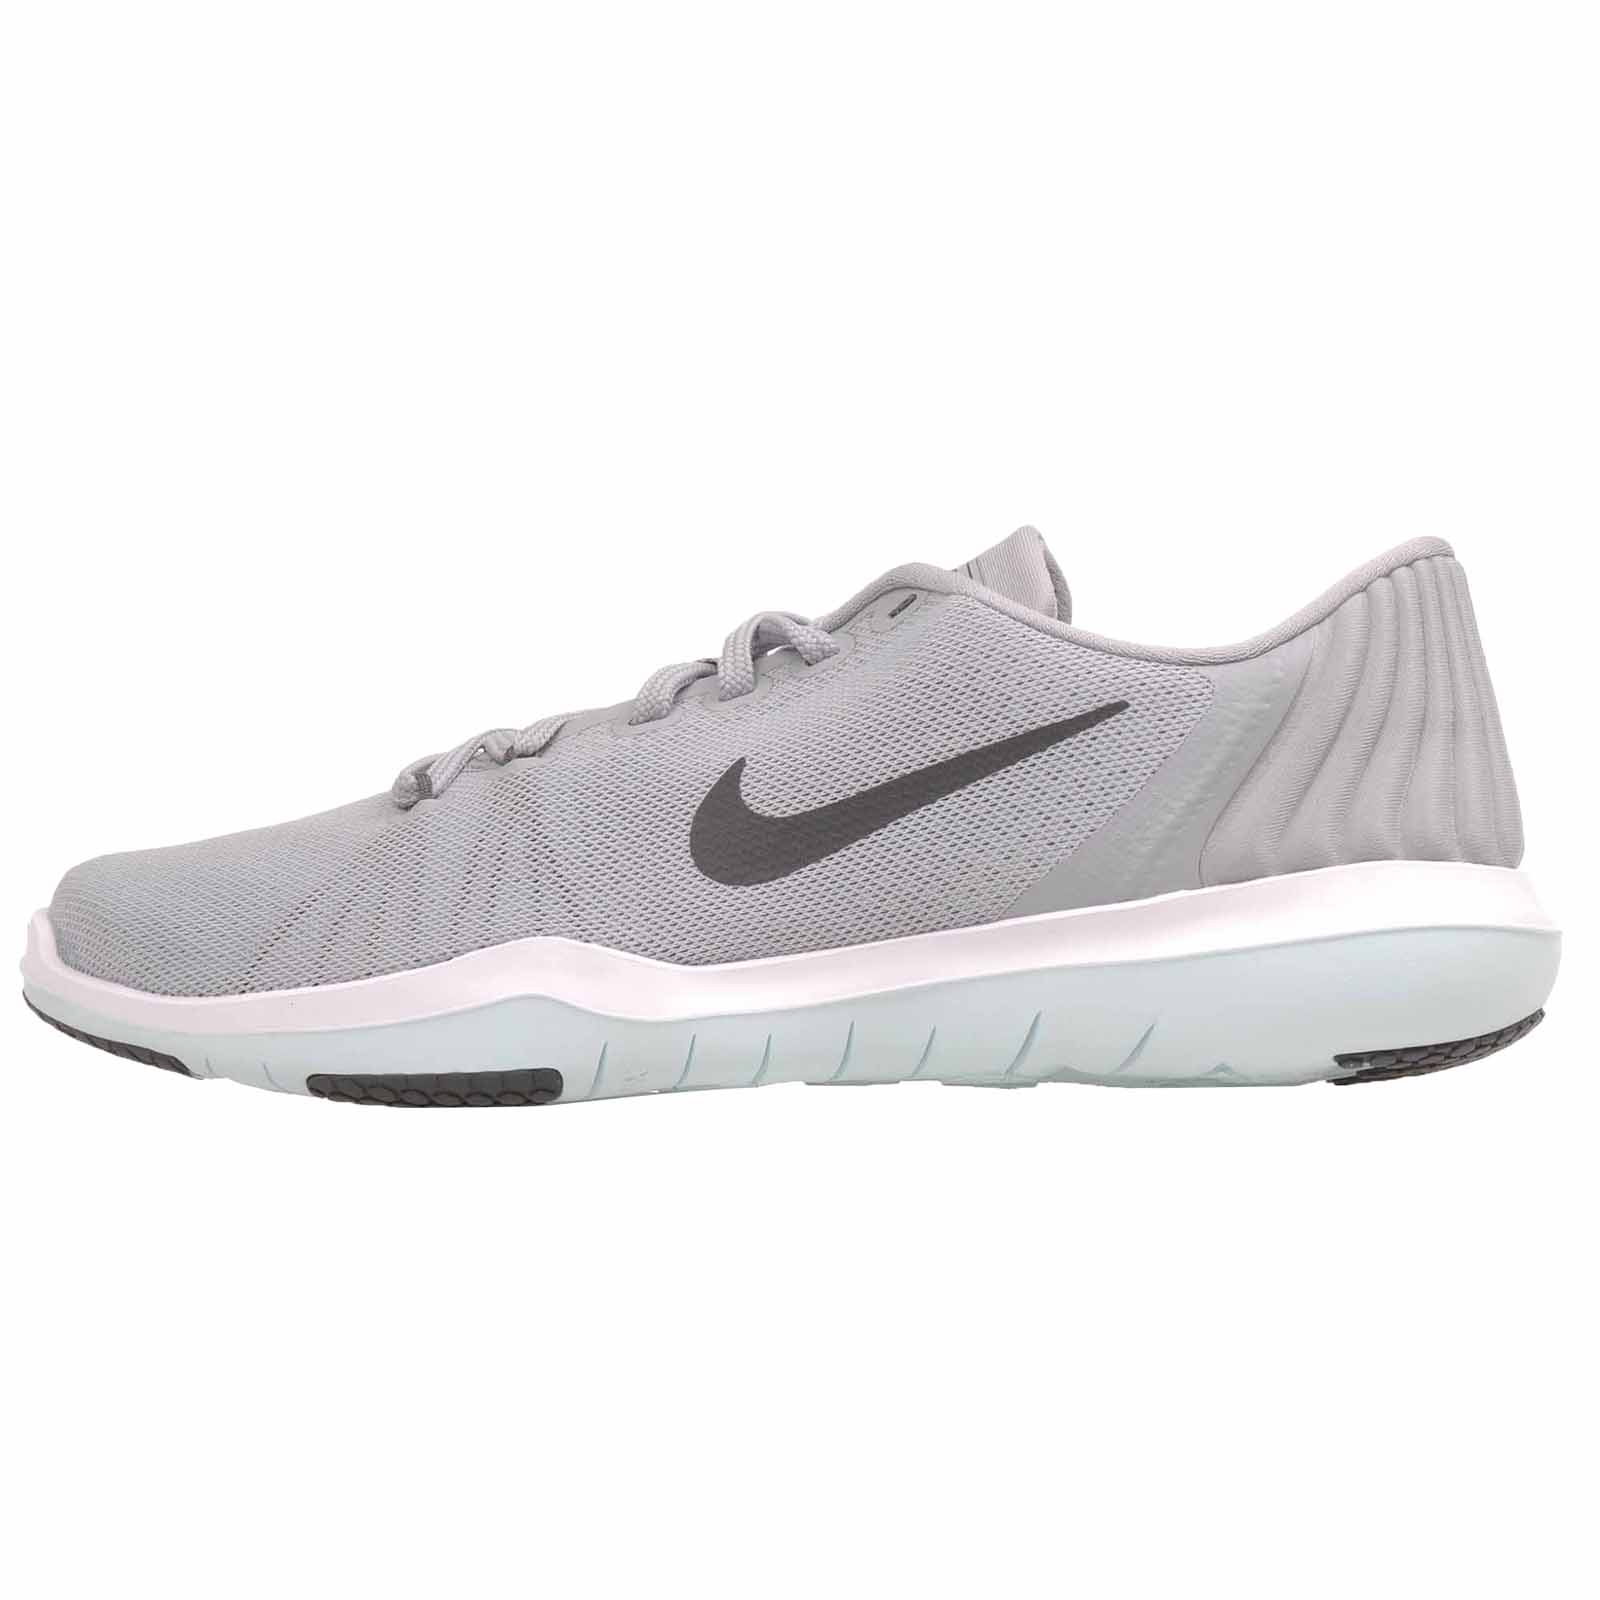 a8a322053739 Details about Nike Wmns Flex Supreme TR 5 Cross Training Womens Shoes Wolf  Grey 852467-007